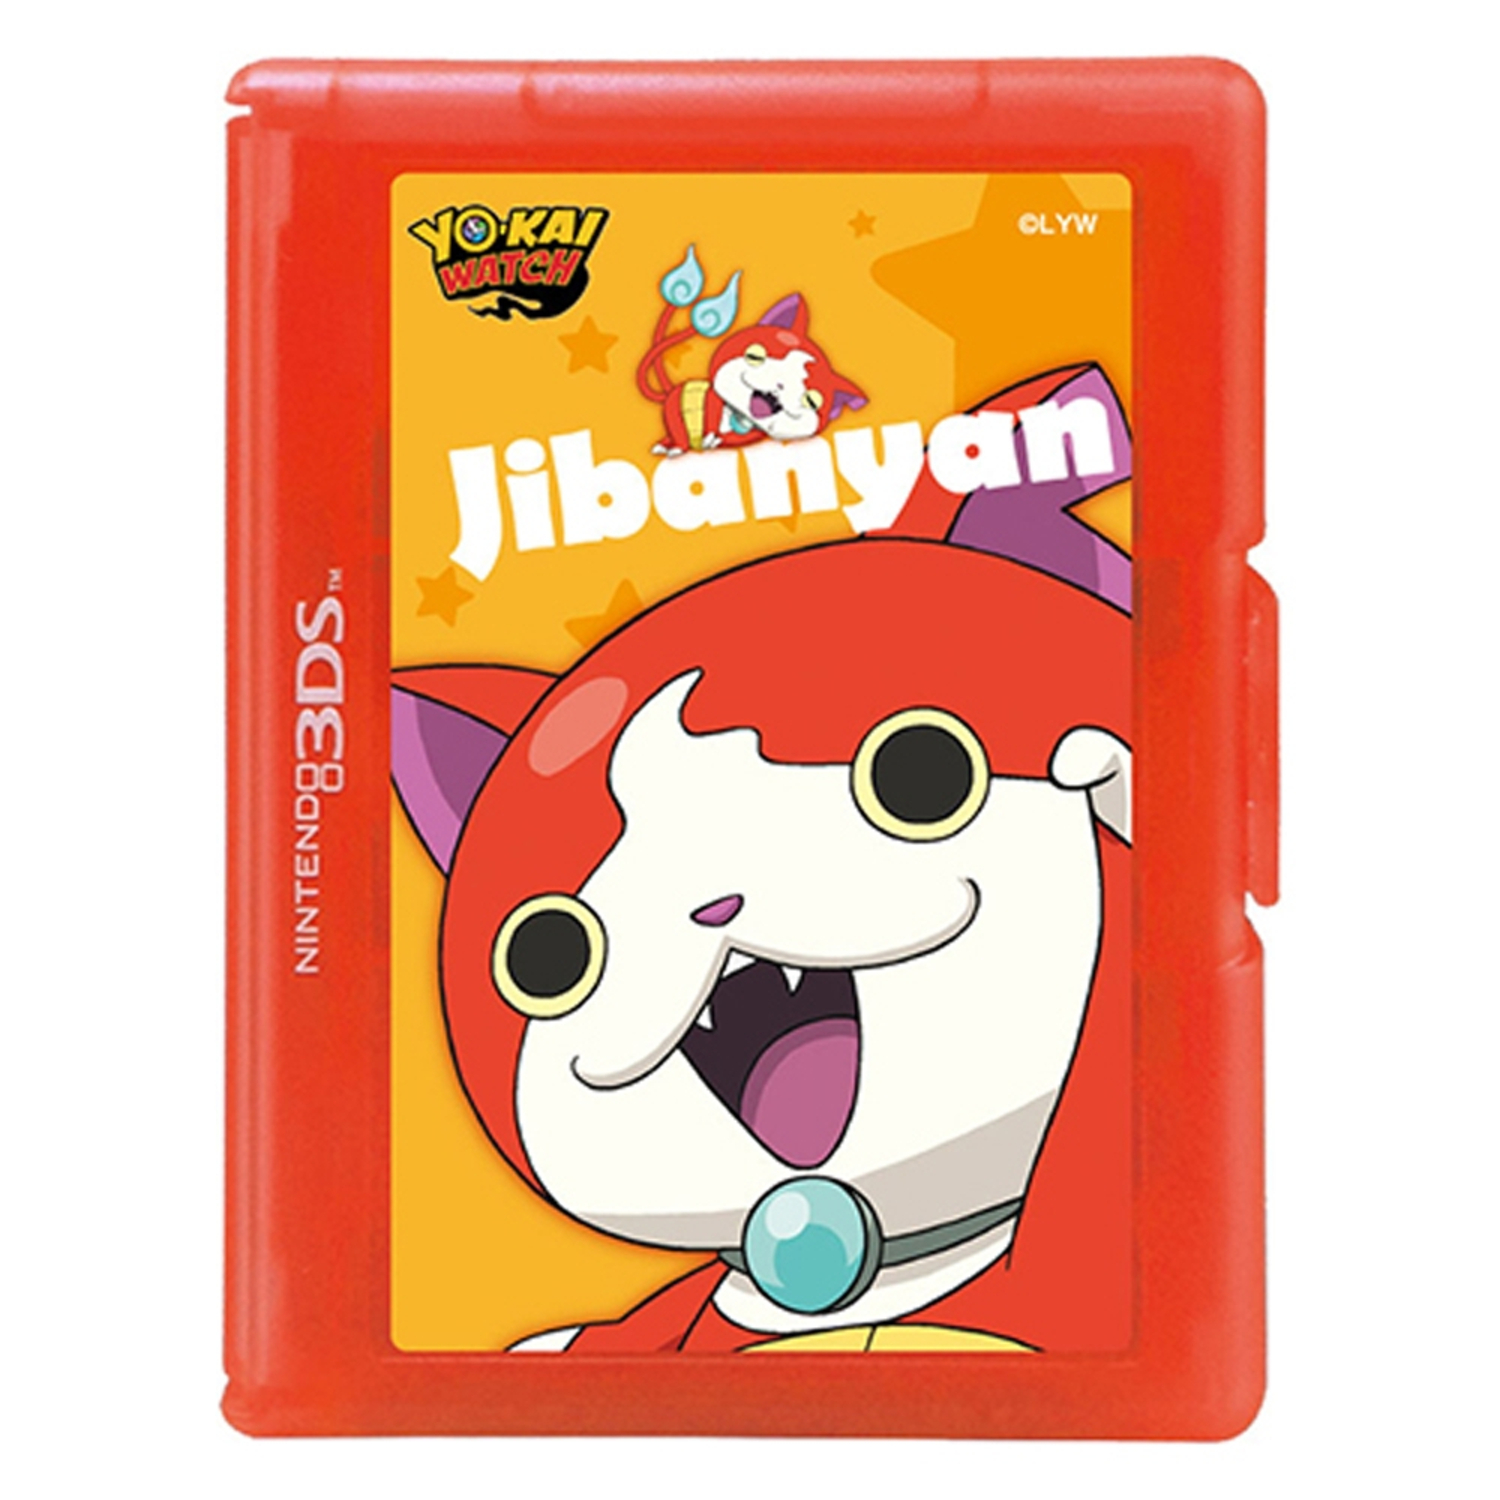 Hori YoKai Watch Game Card Case For Jibanyan Nintendo New 3DS XL